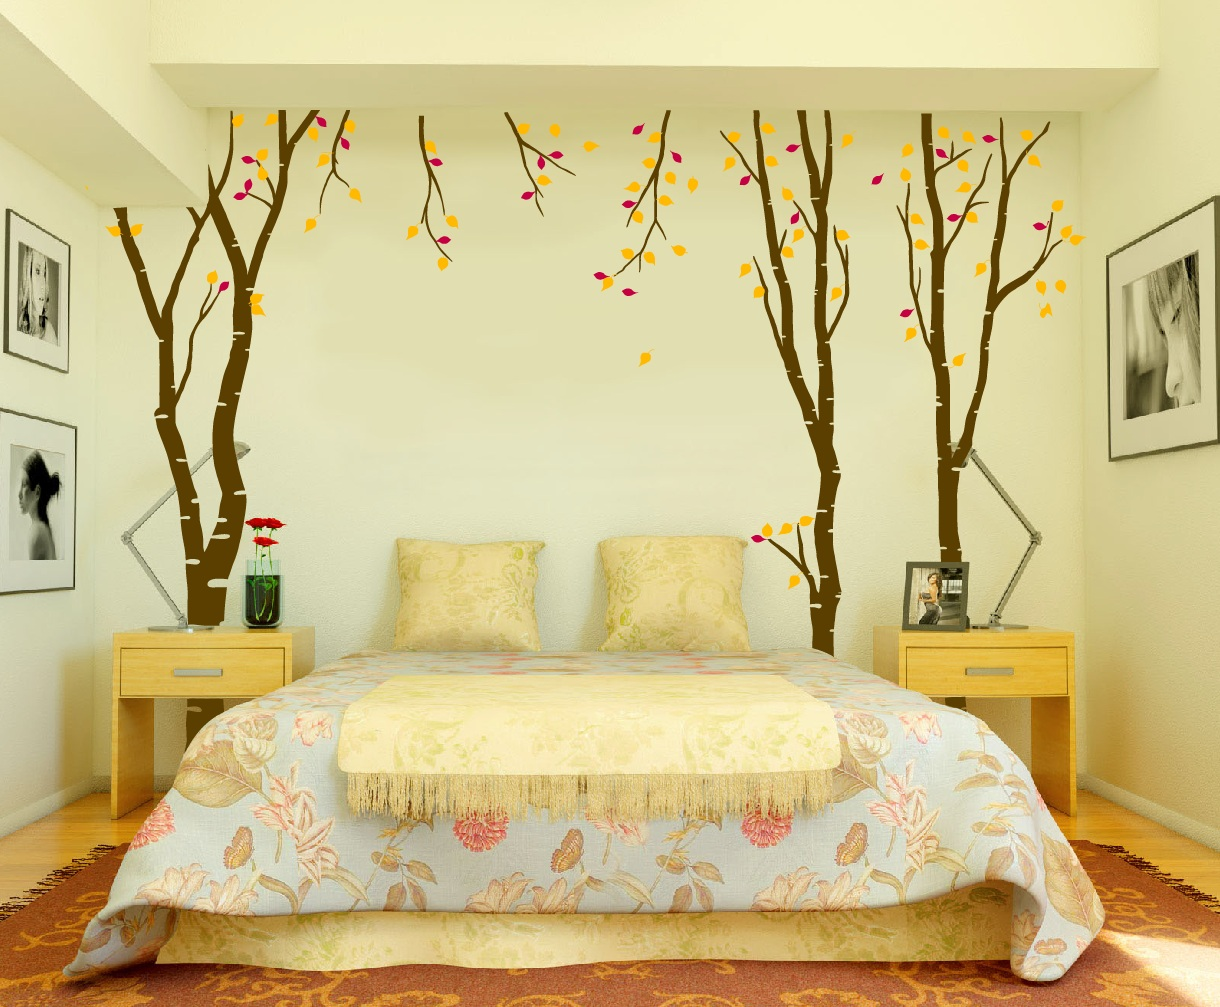 birch-tree-wall-decal-with-leaves-bedroom-decor-autumn-fall-1119.jpg